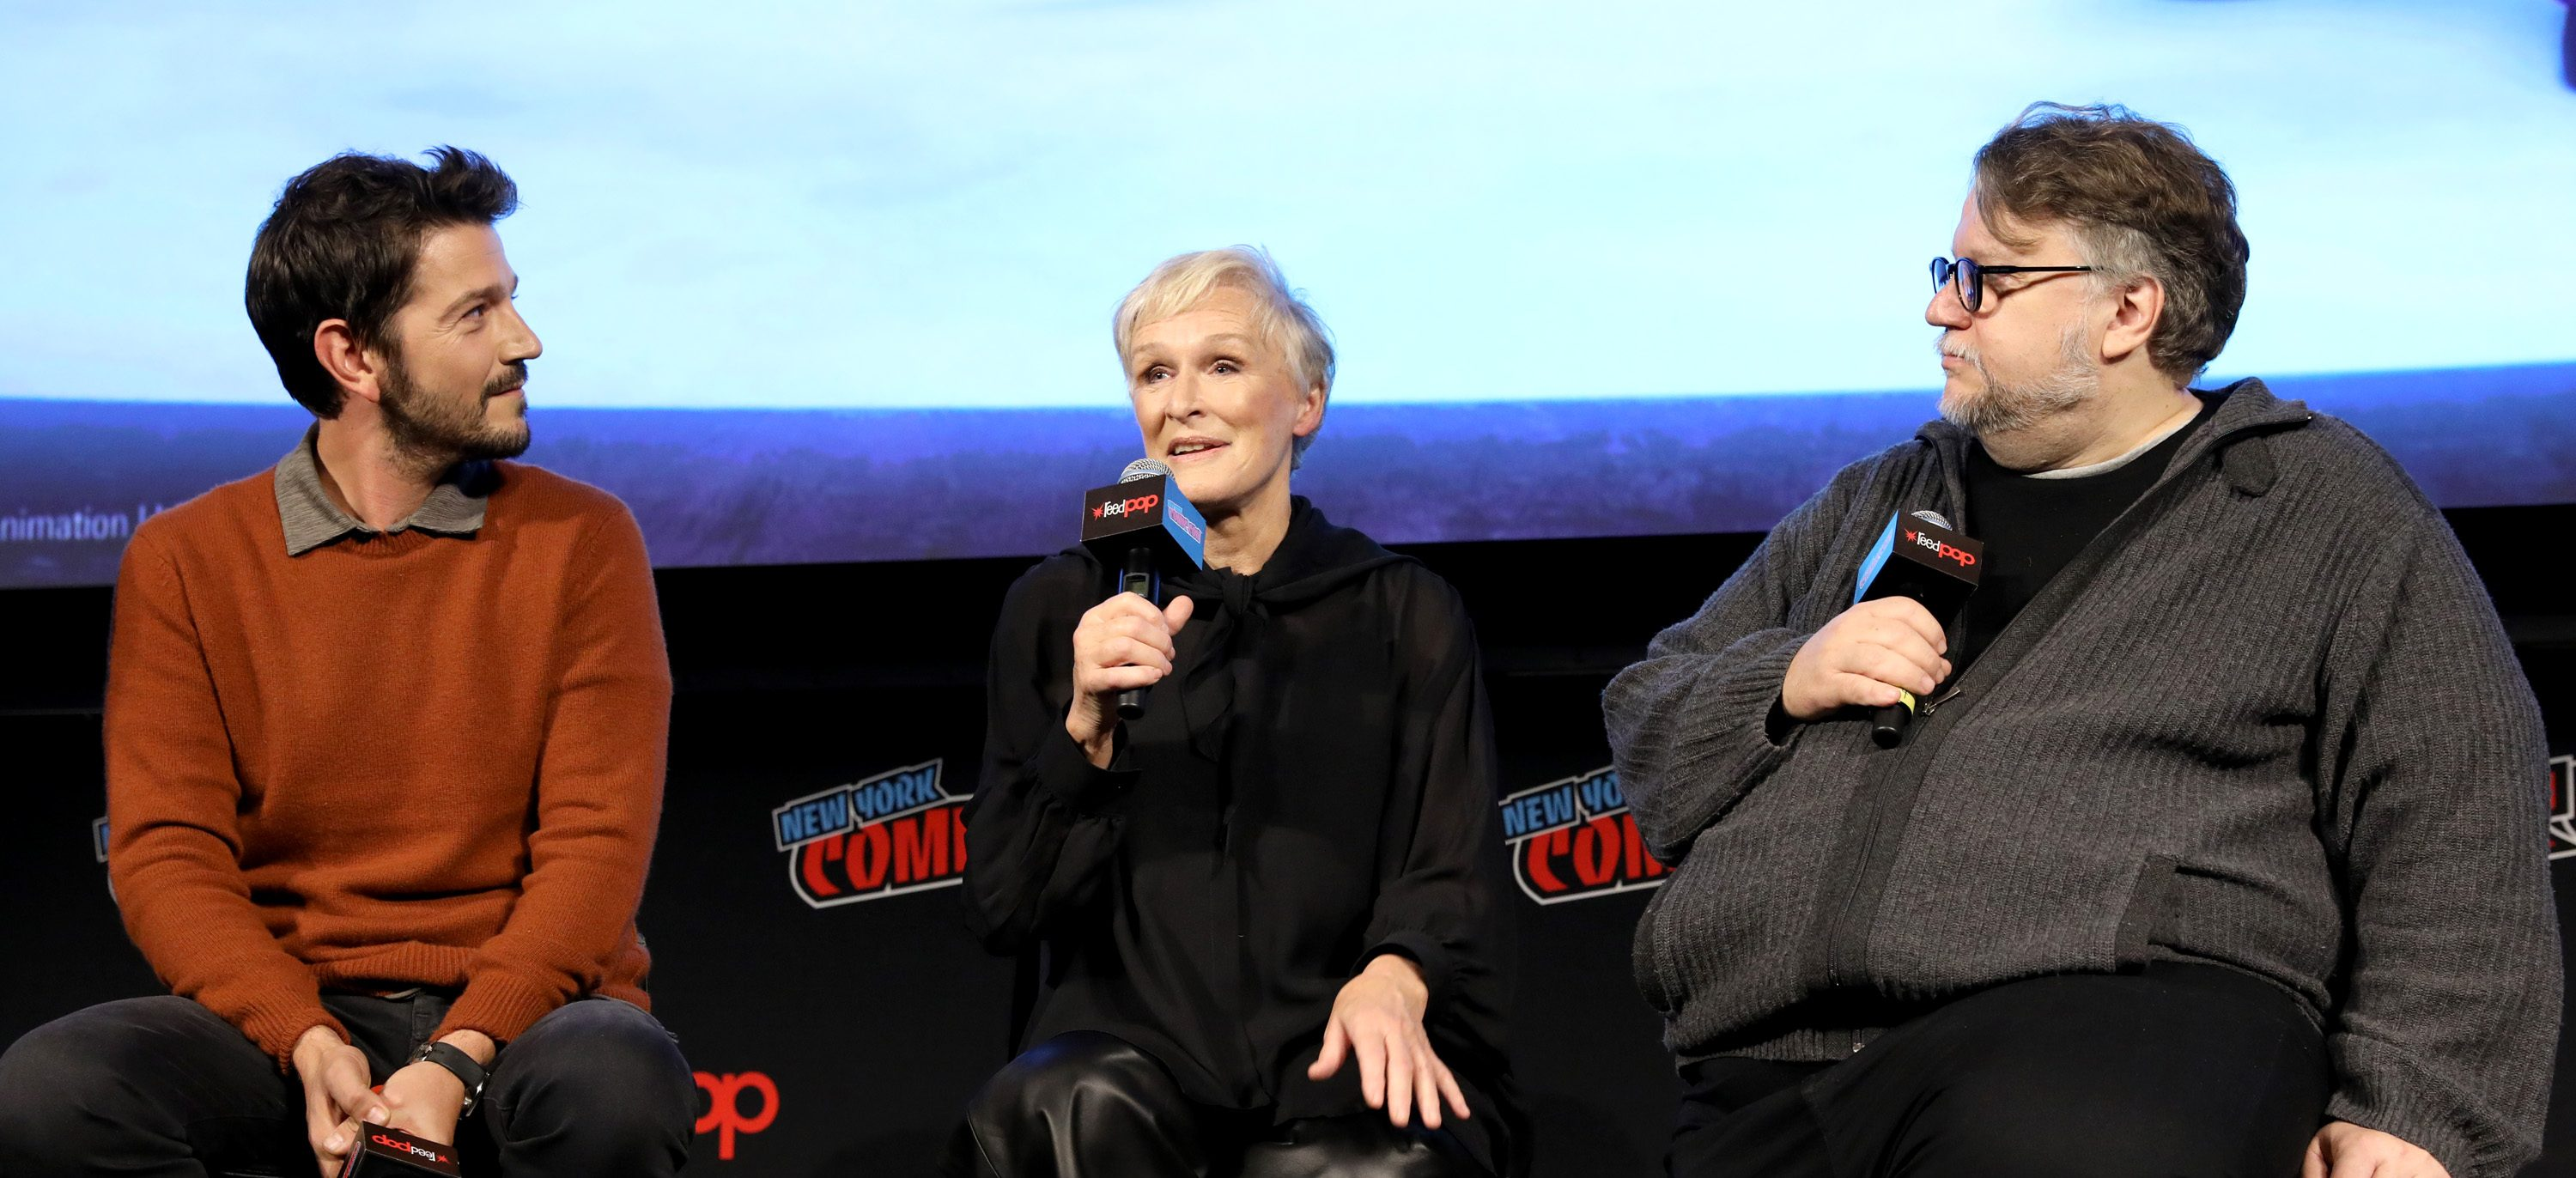 TRAILER: Glenn Close & Diego Luna Voice Guillermo del Toro's Animated Series About Alien Royalty